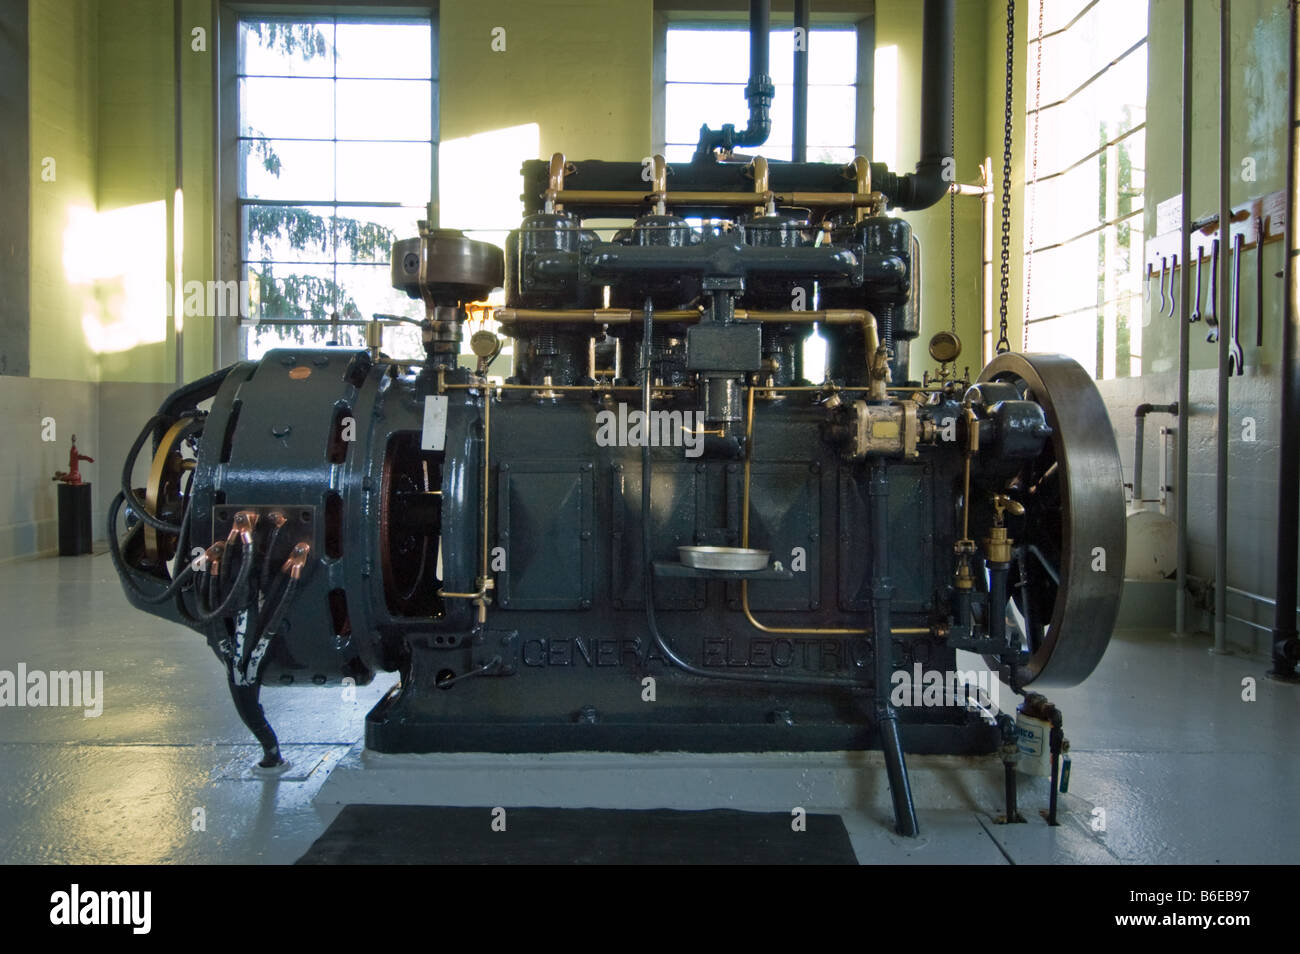 continuous direct current generator 1902 made by general